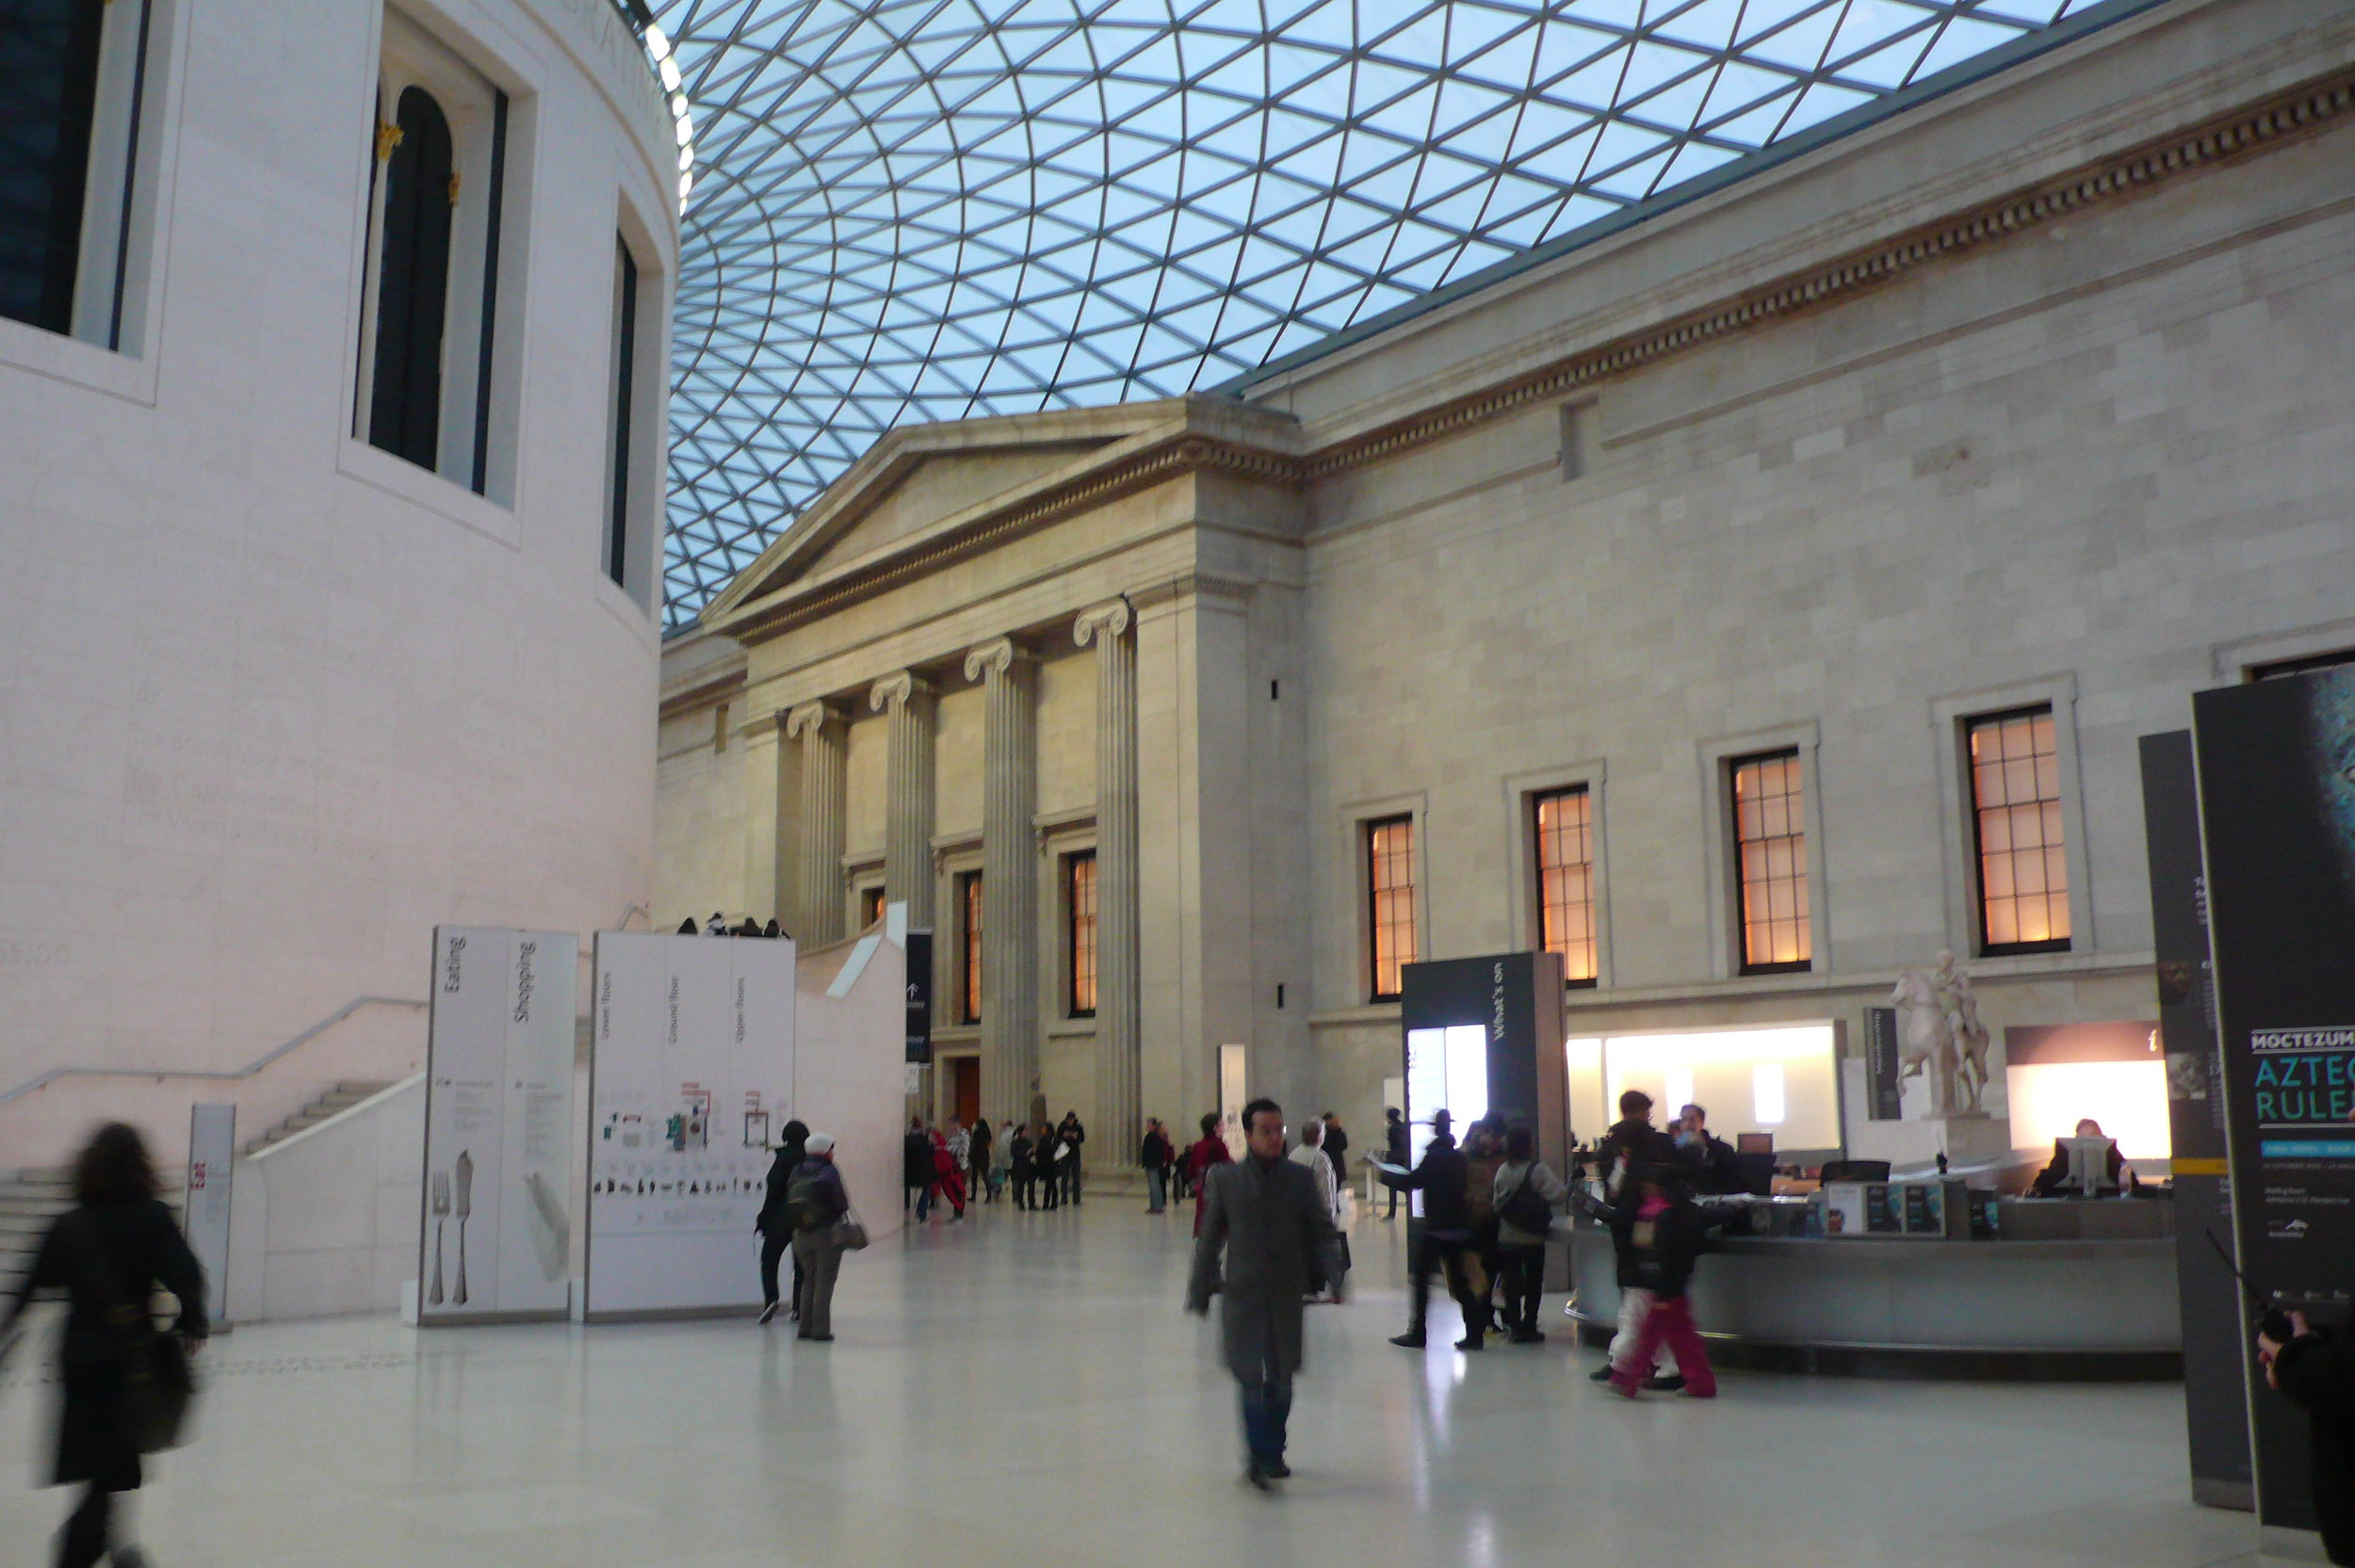 British Museum, London GB